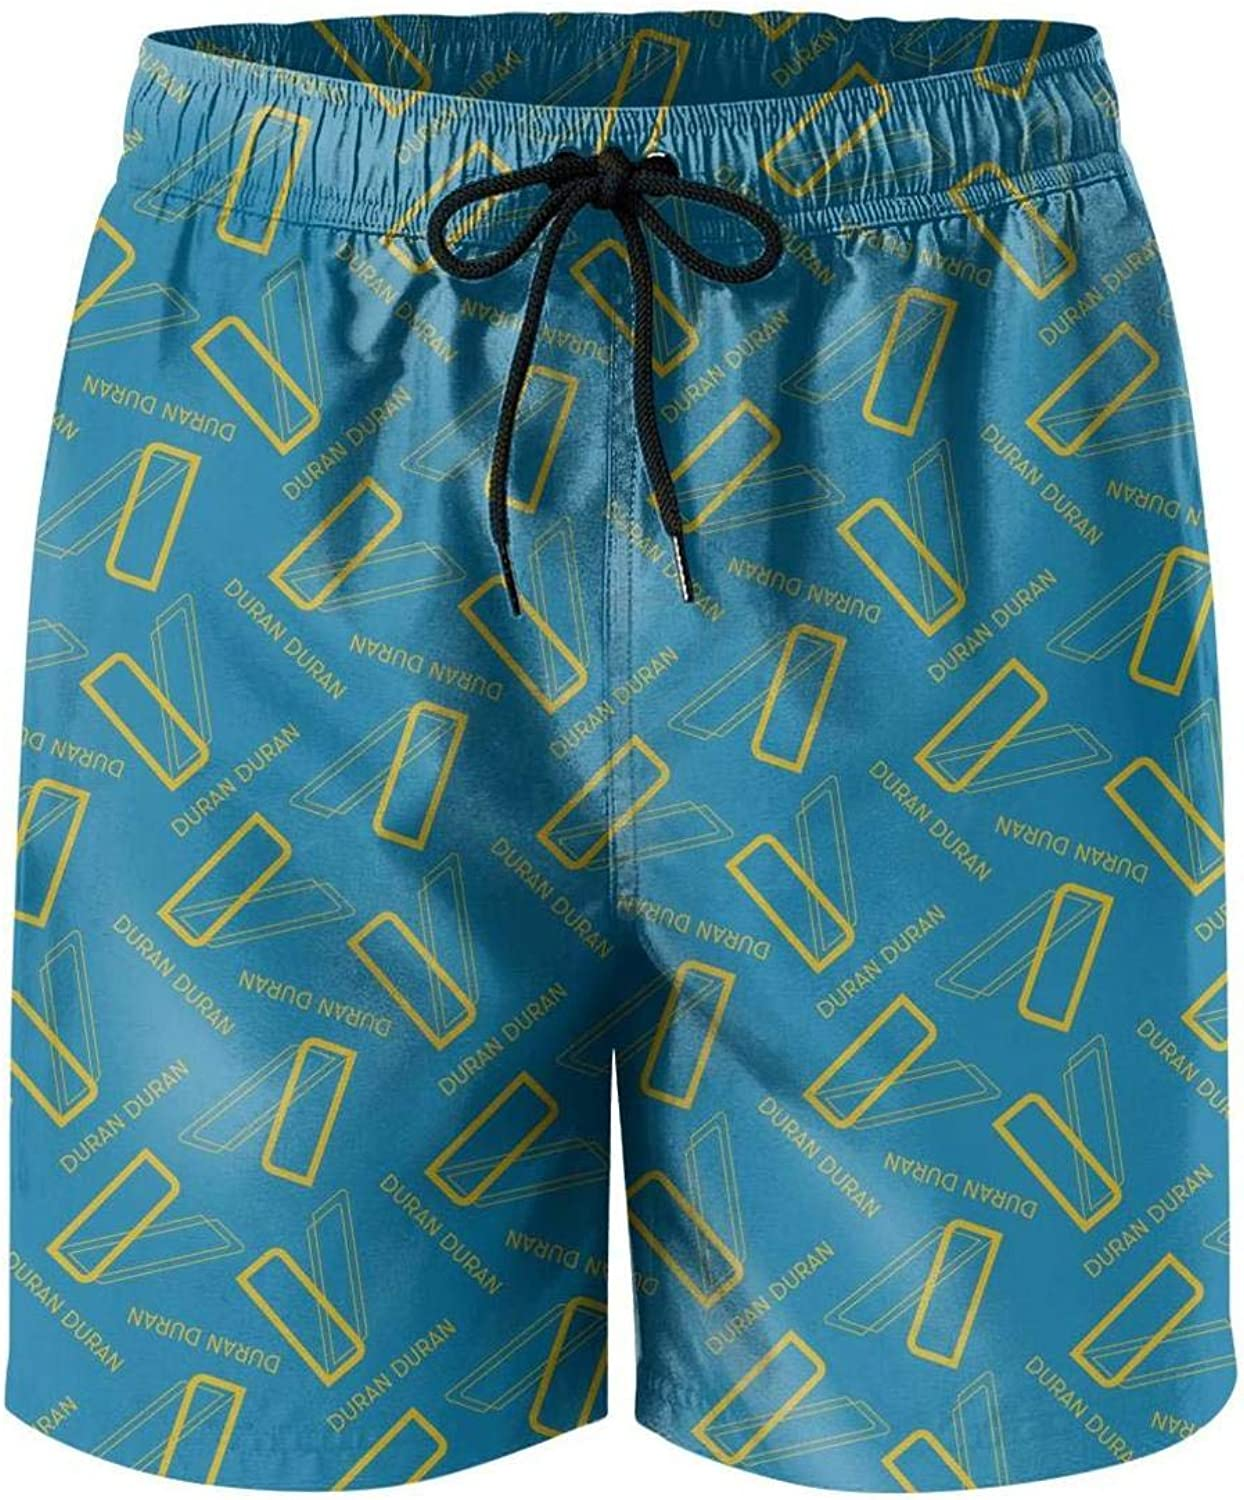 Mens Beach Shorts Design Music Swimsuit Trunks Jogging Classical Surfing Board